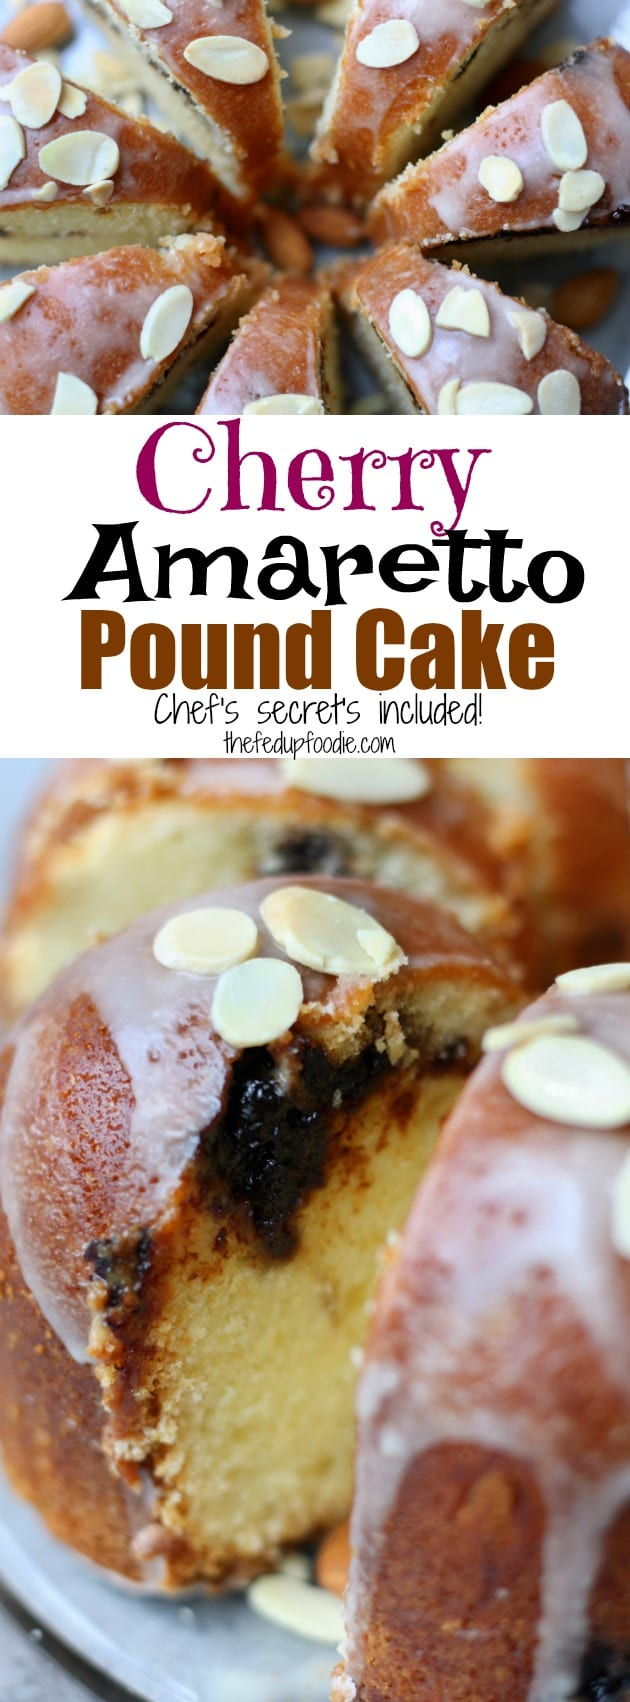 Learn chef's secrets and steps to baking perfect pound cake with this Cherry Amaretto Pound Cake recipe. Buttery and rich with flavors of amaretto and cherry makes this a favorite at holiday parties! https://www.thefedupfoodie.com